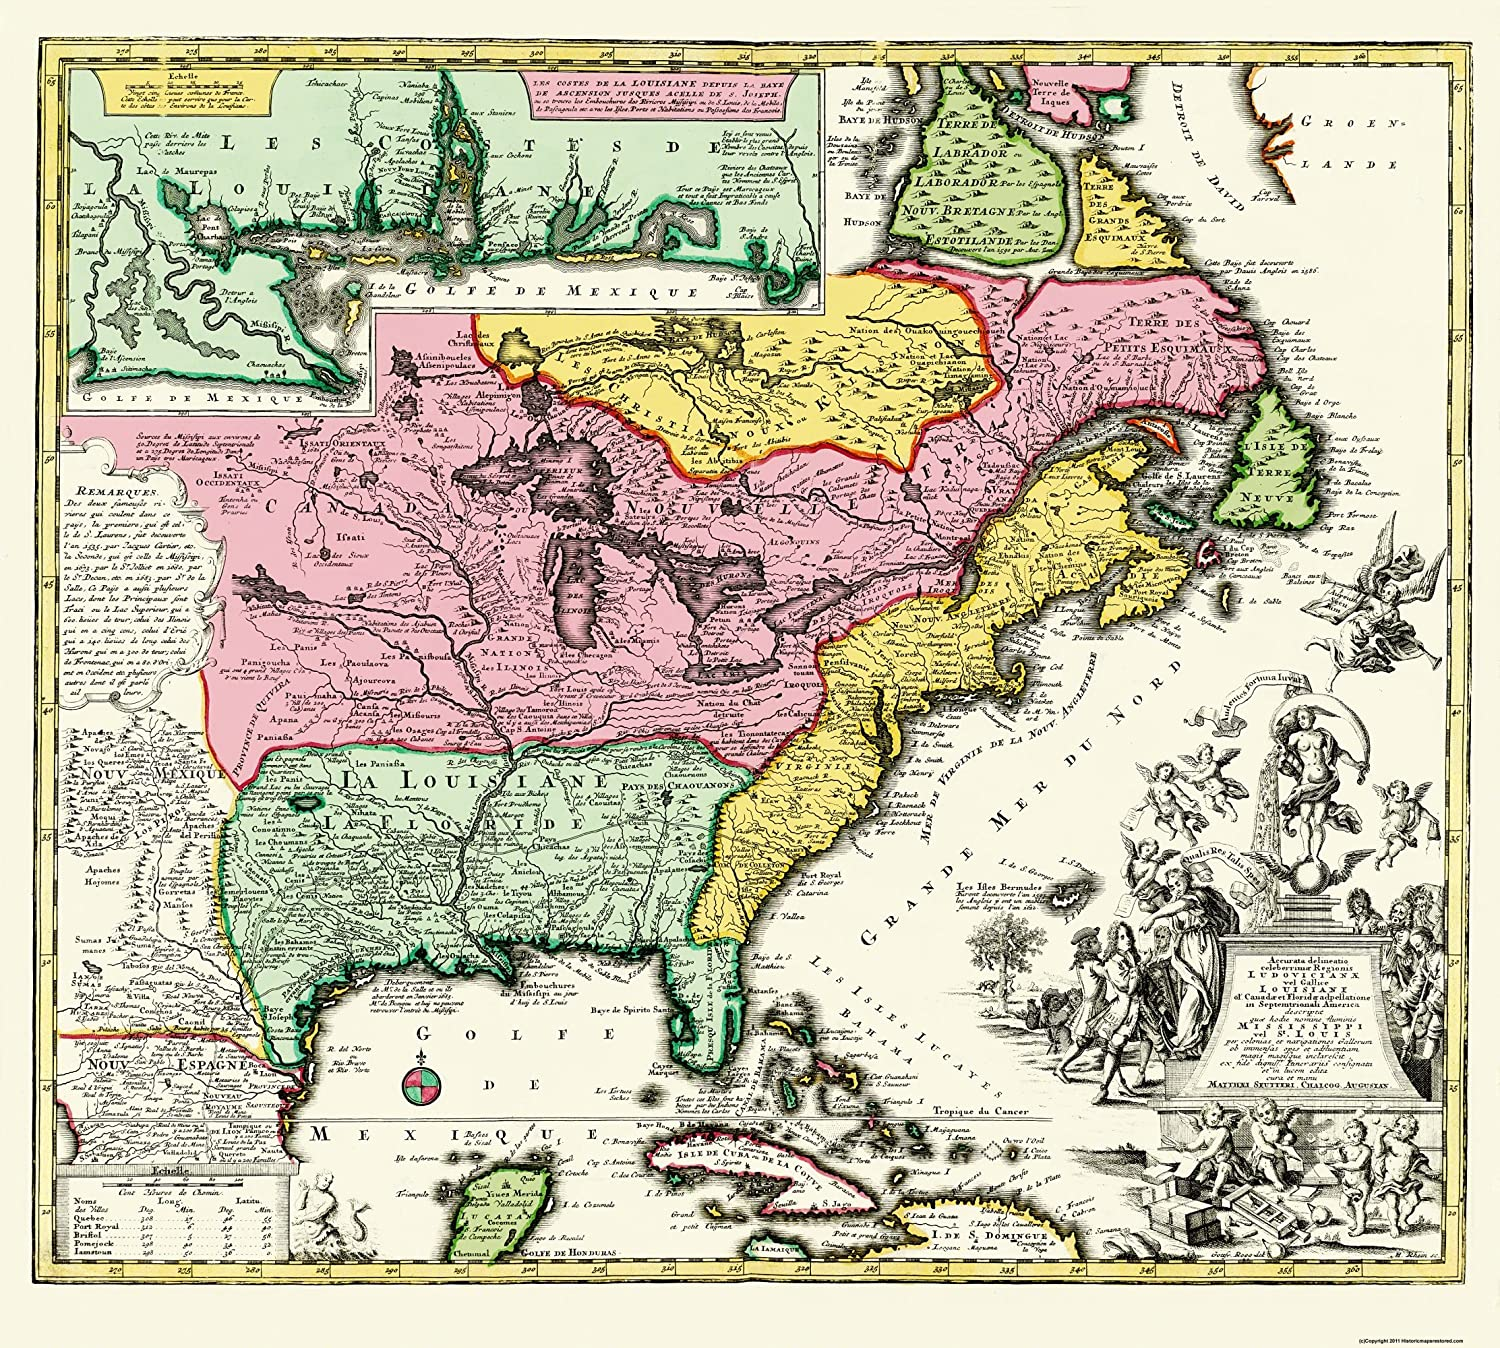 Amazon.com: Old State Map - Eastern United States - Seutter ...